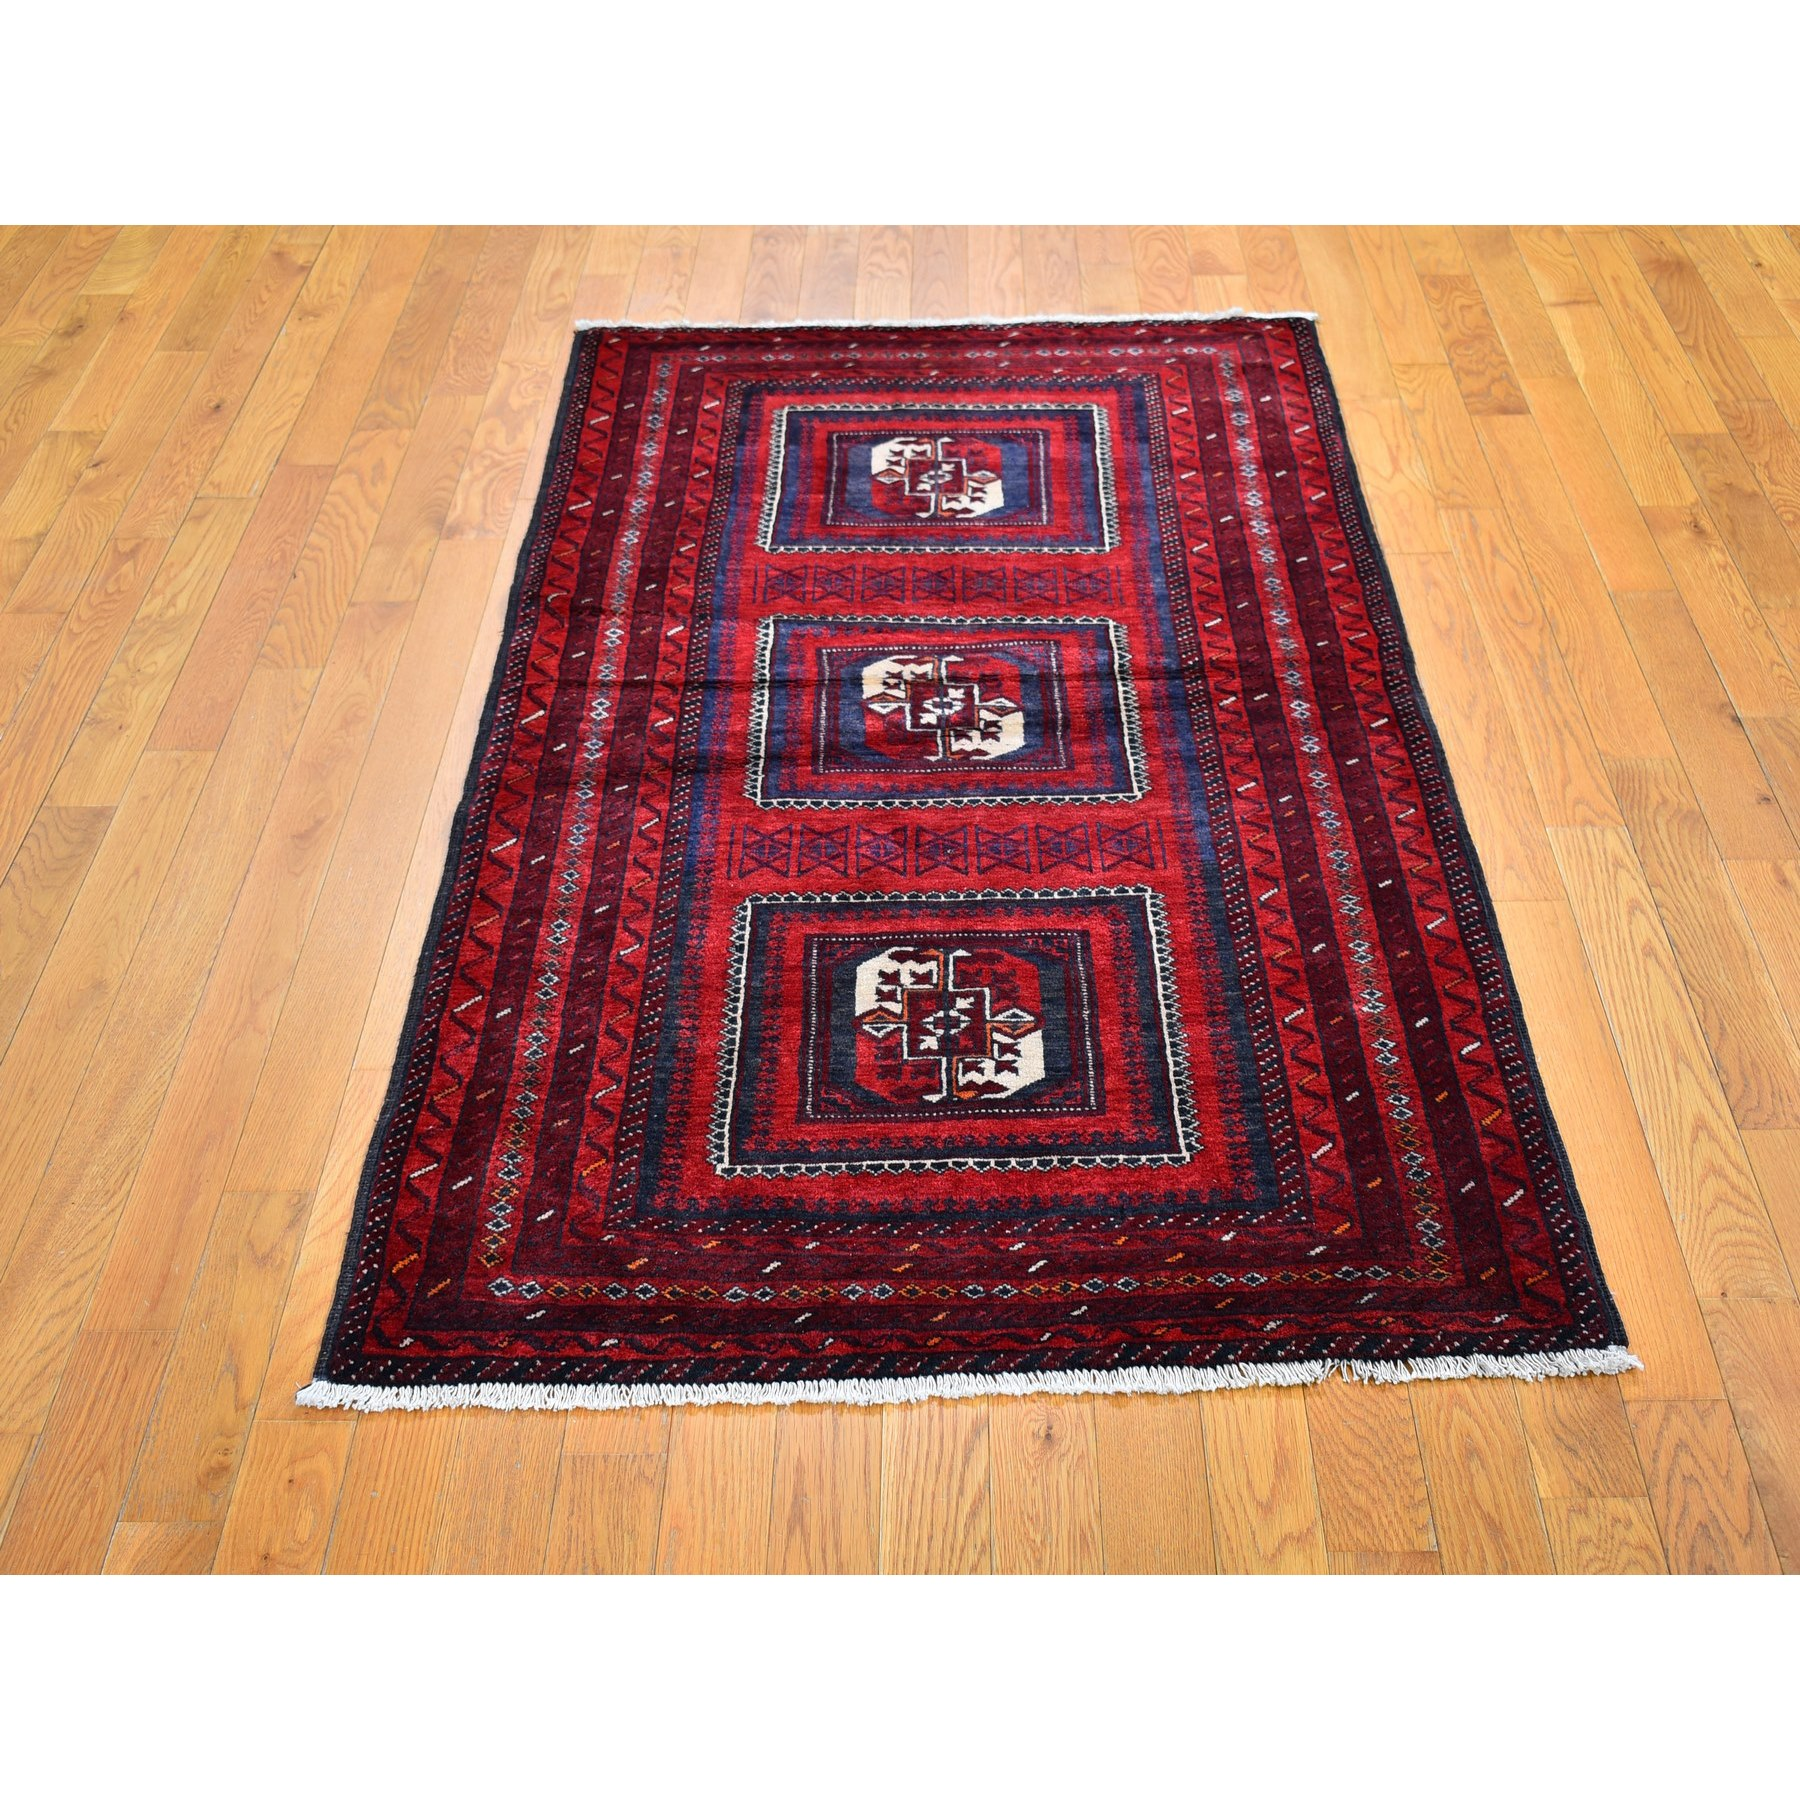 "3'5""x6'1"" Vintage Persian Baluch with Bashir Design Red Organic Wool Hand Knotted Oriental Rug"